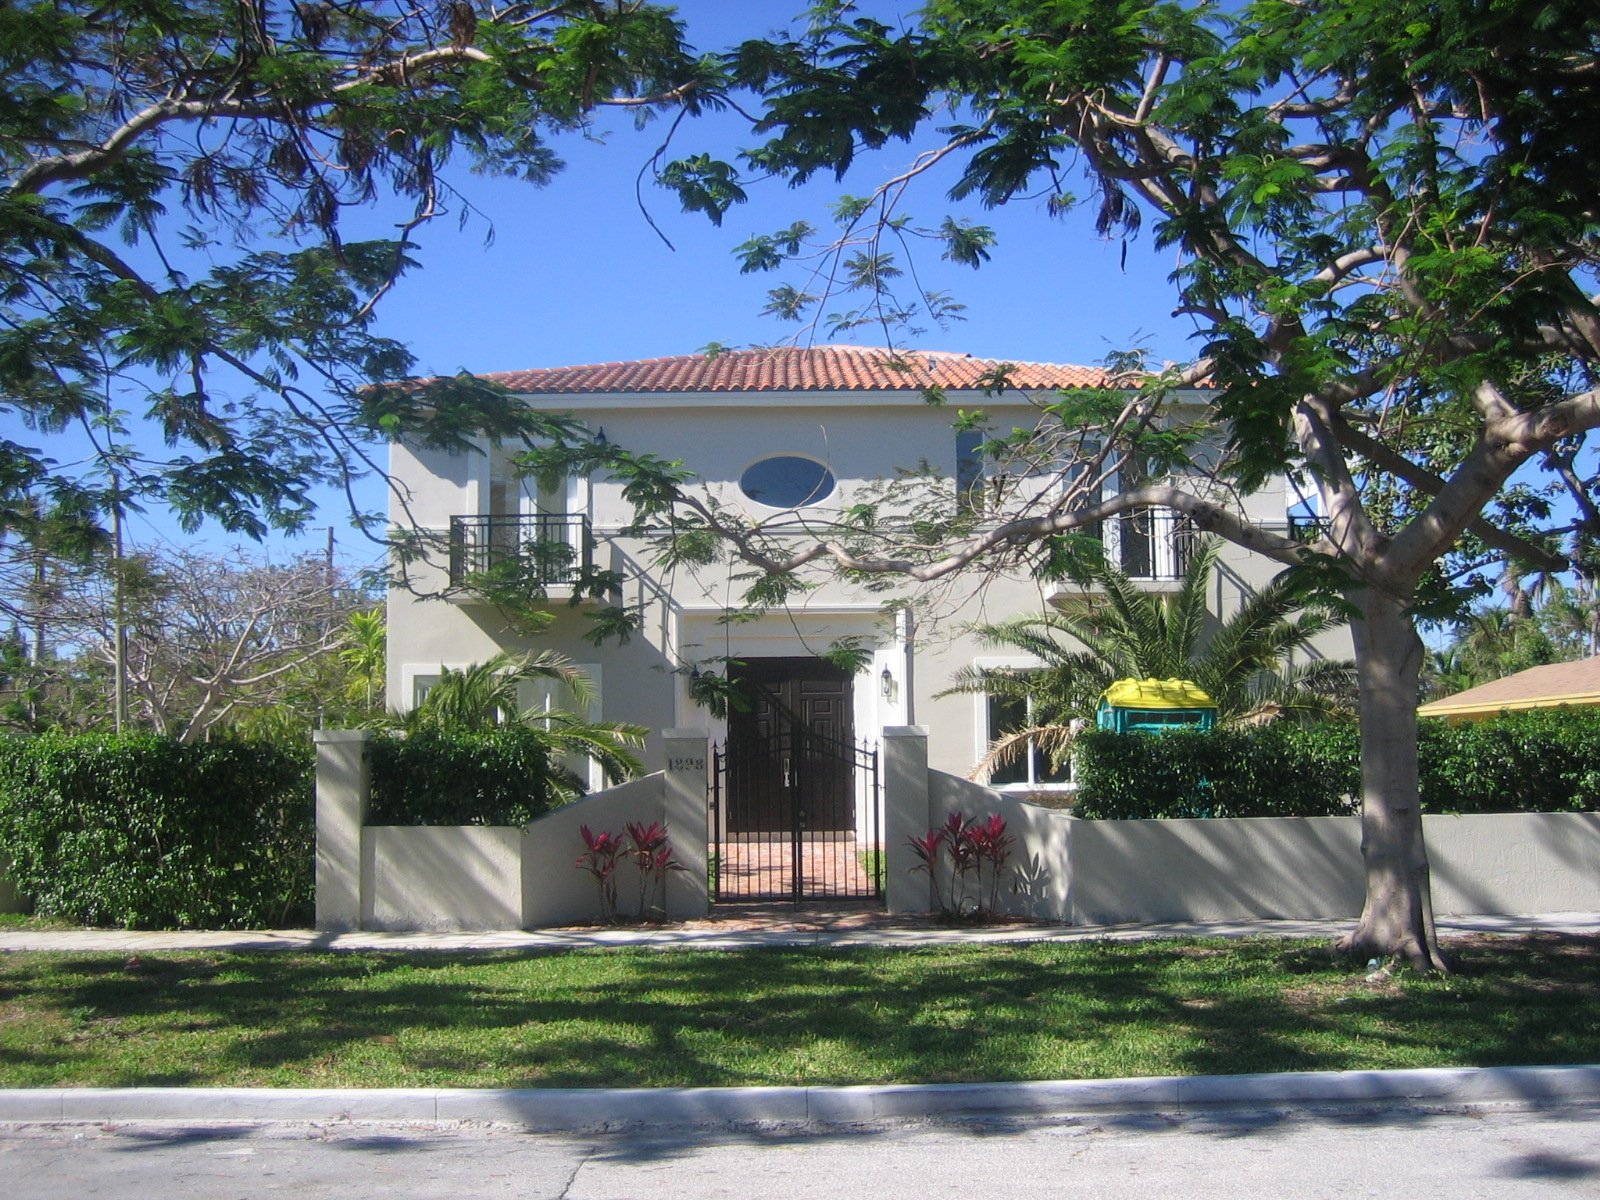 South Miami Ave Houses 4